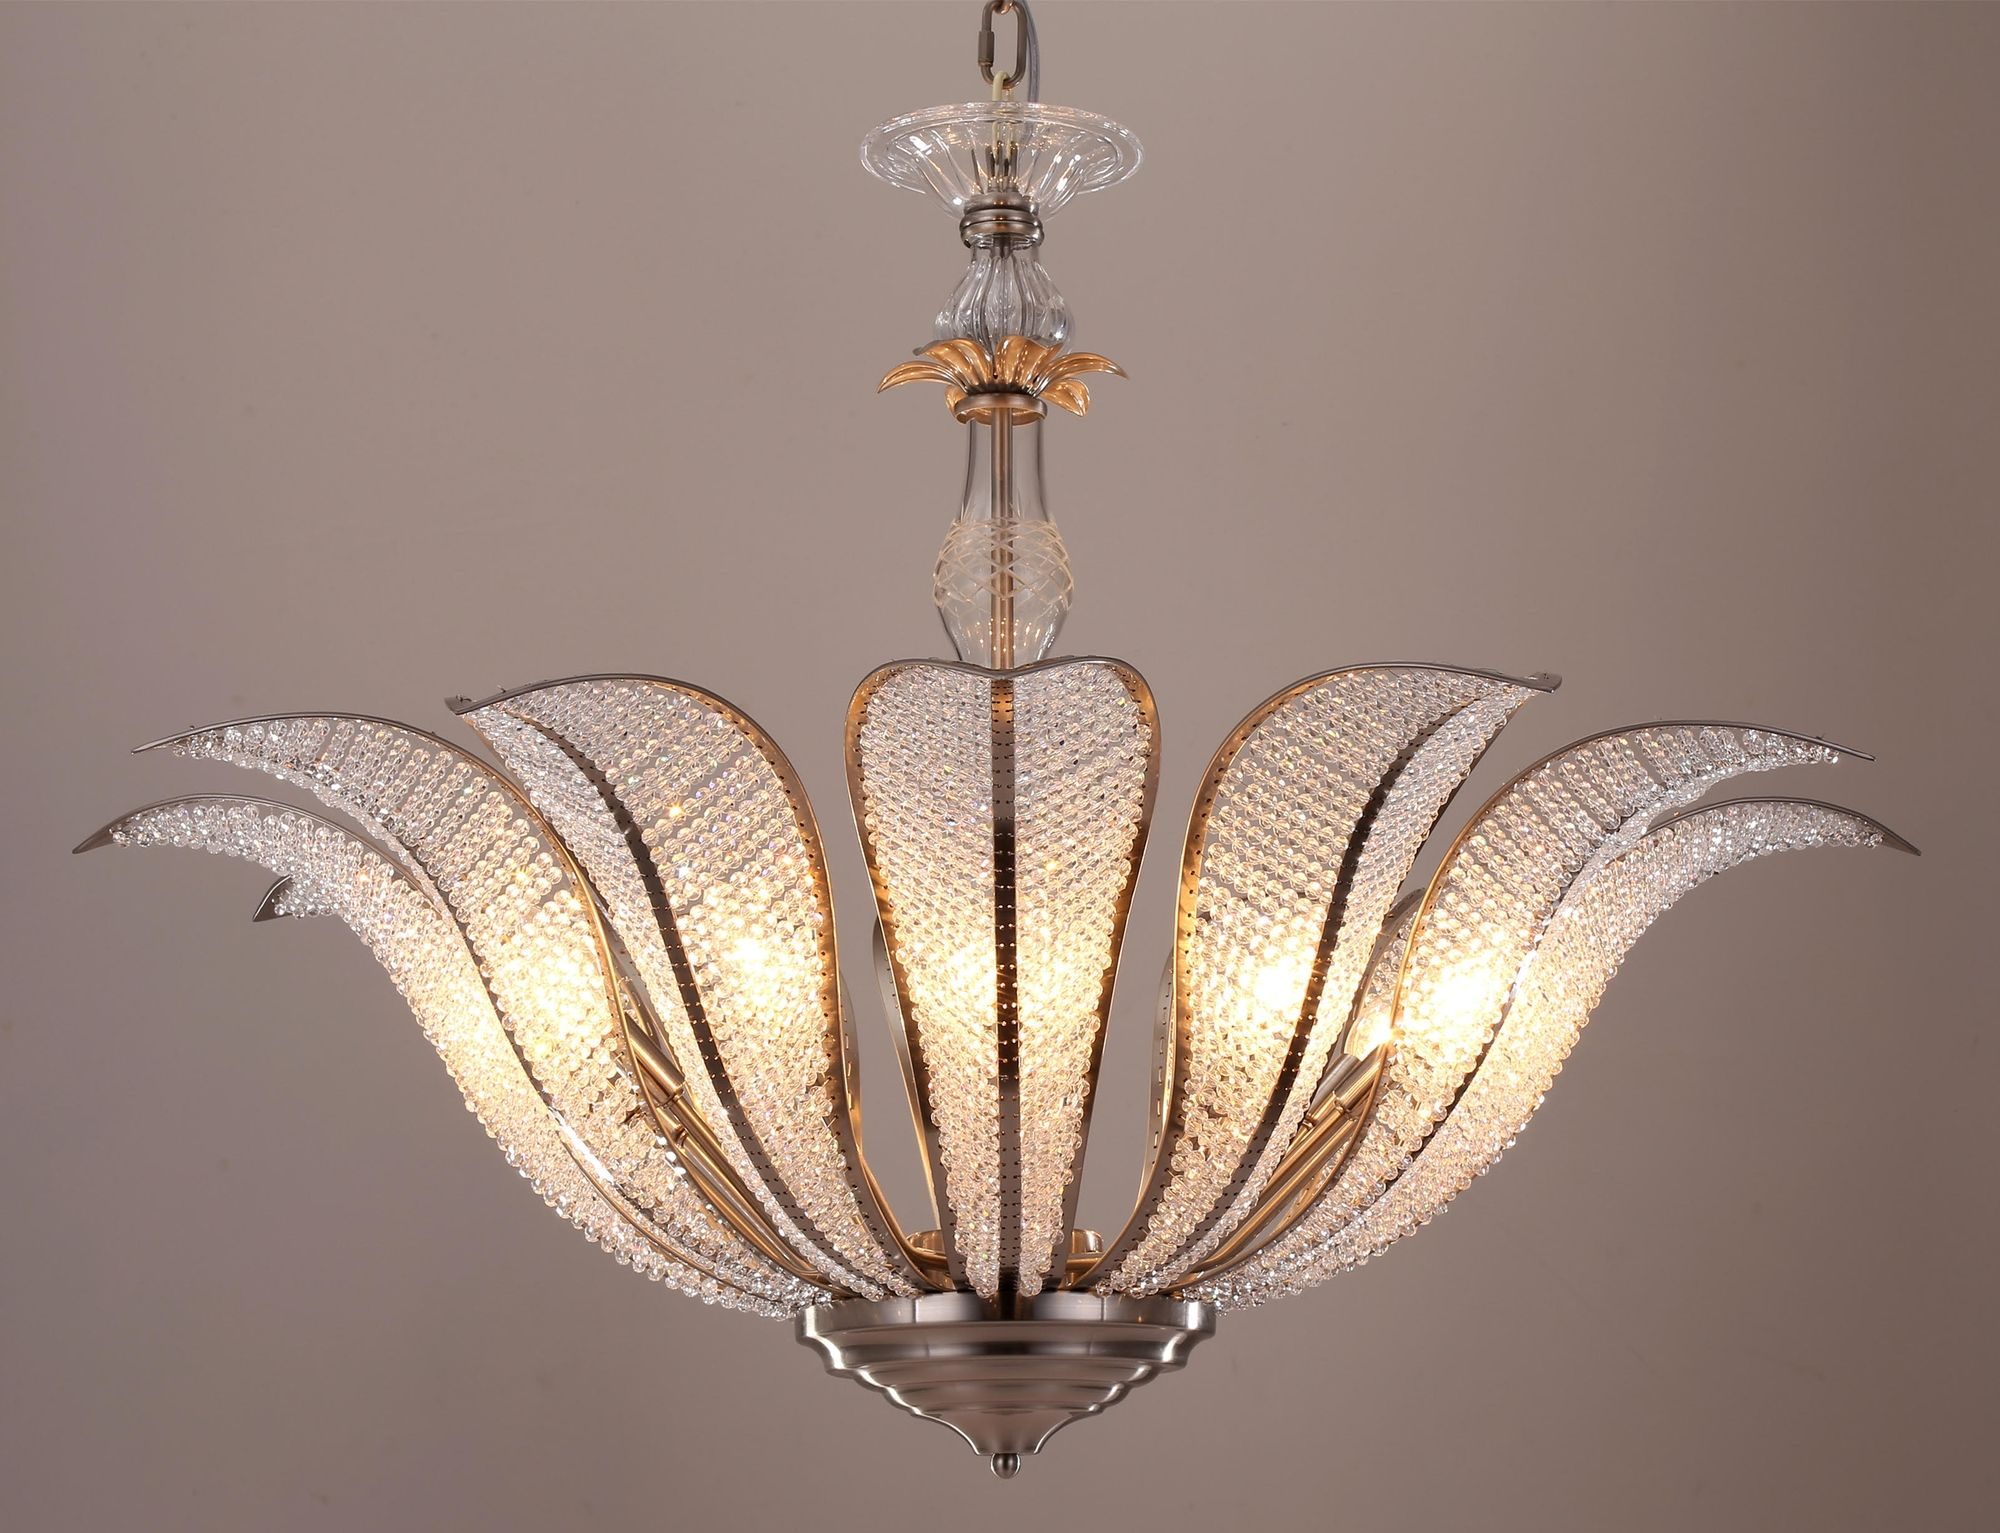 Search No Further Than The Glass Adorned Flower Chandelier Balances Vintage Style And Luxe Charm To Perfection